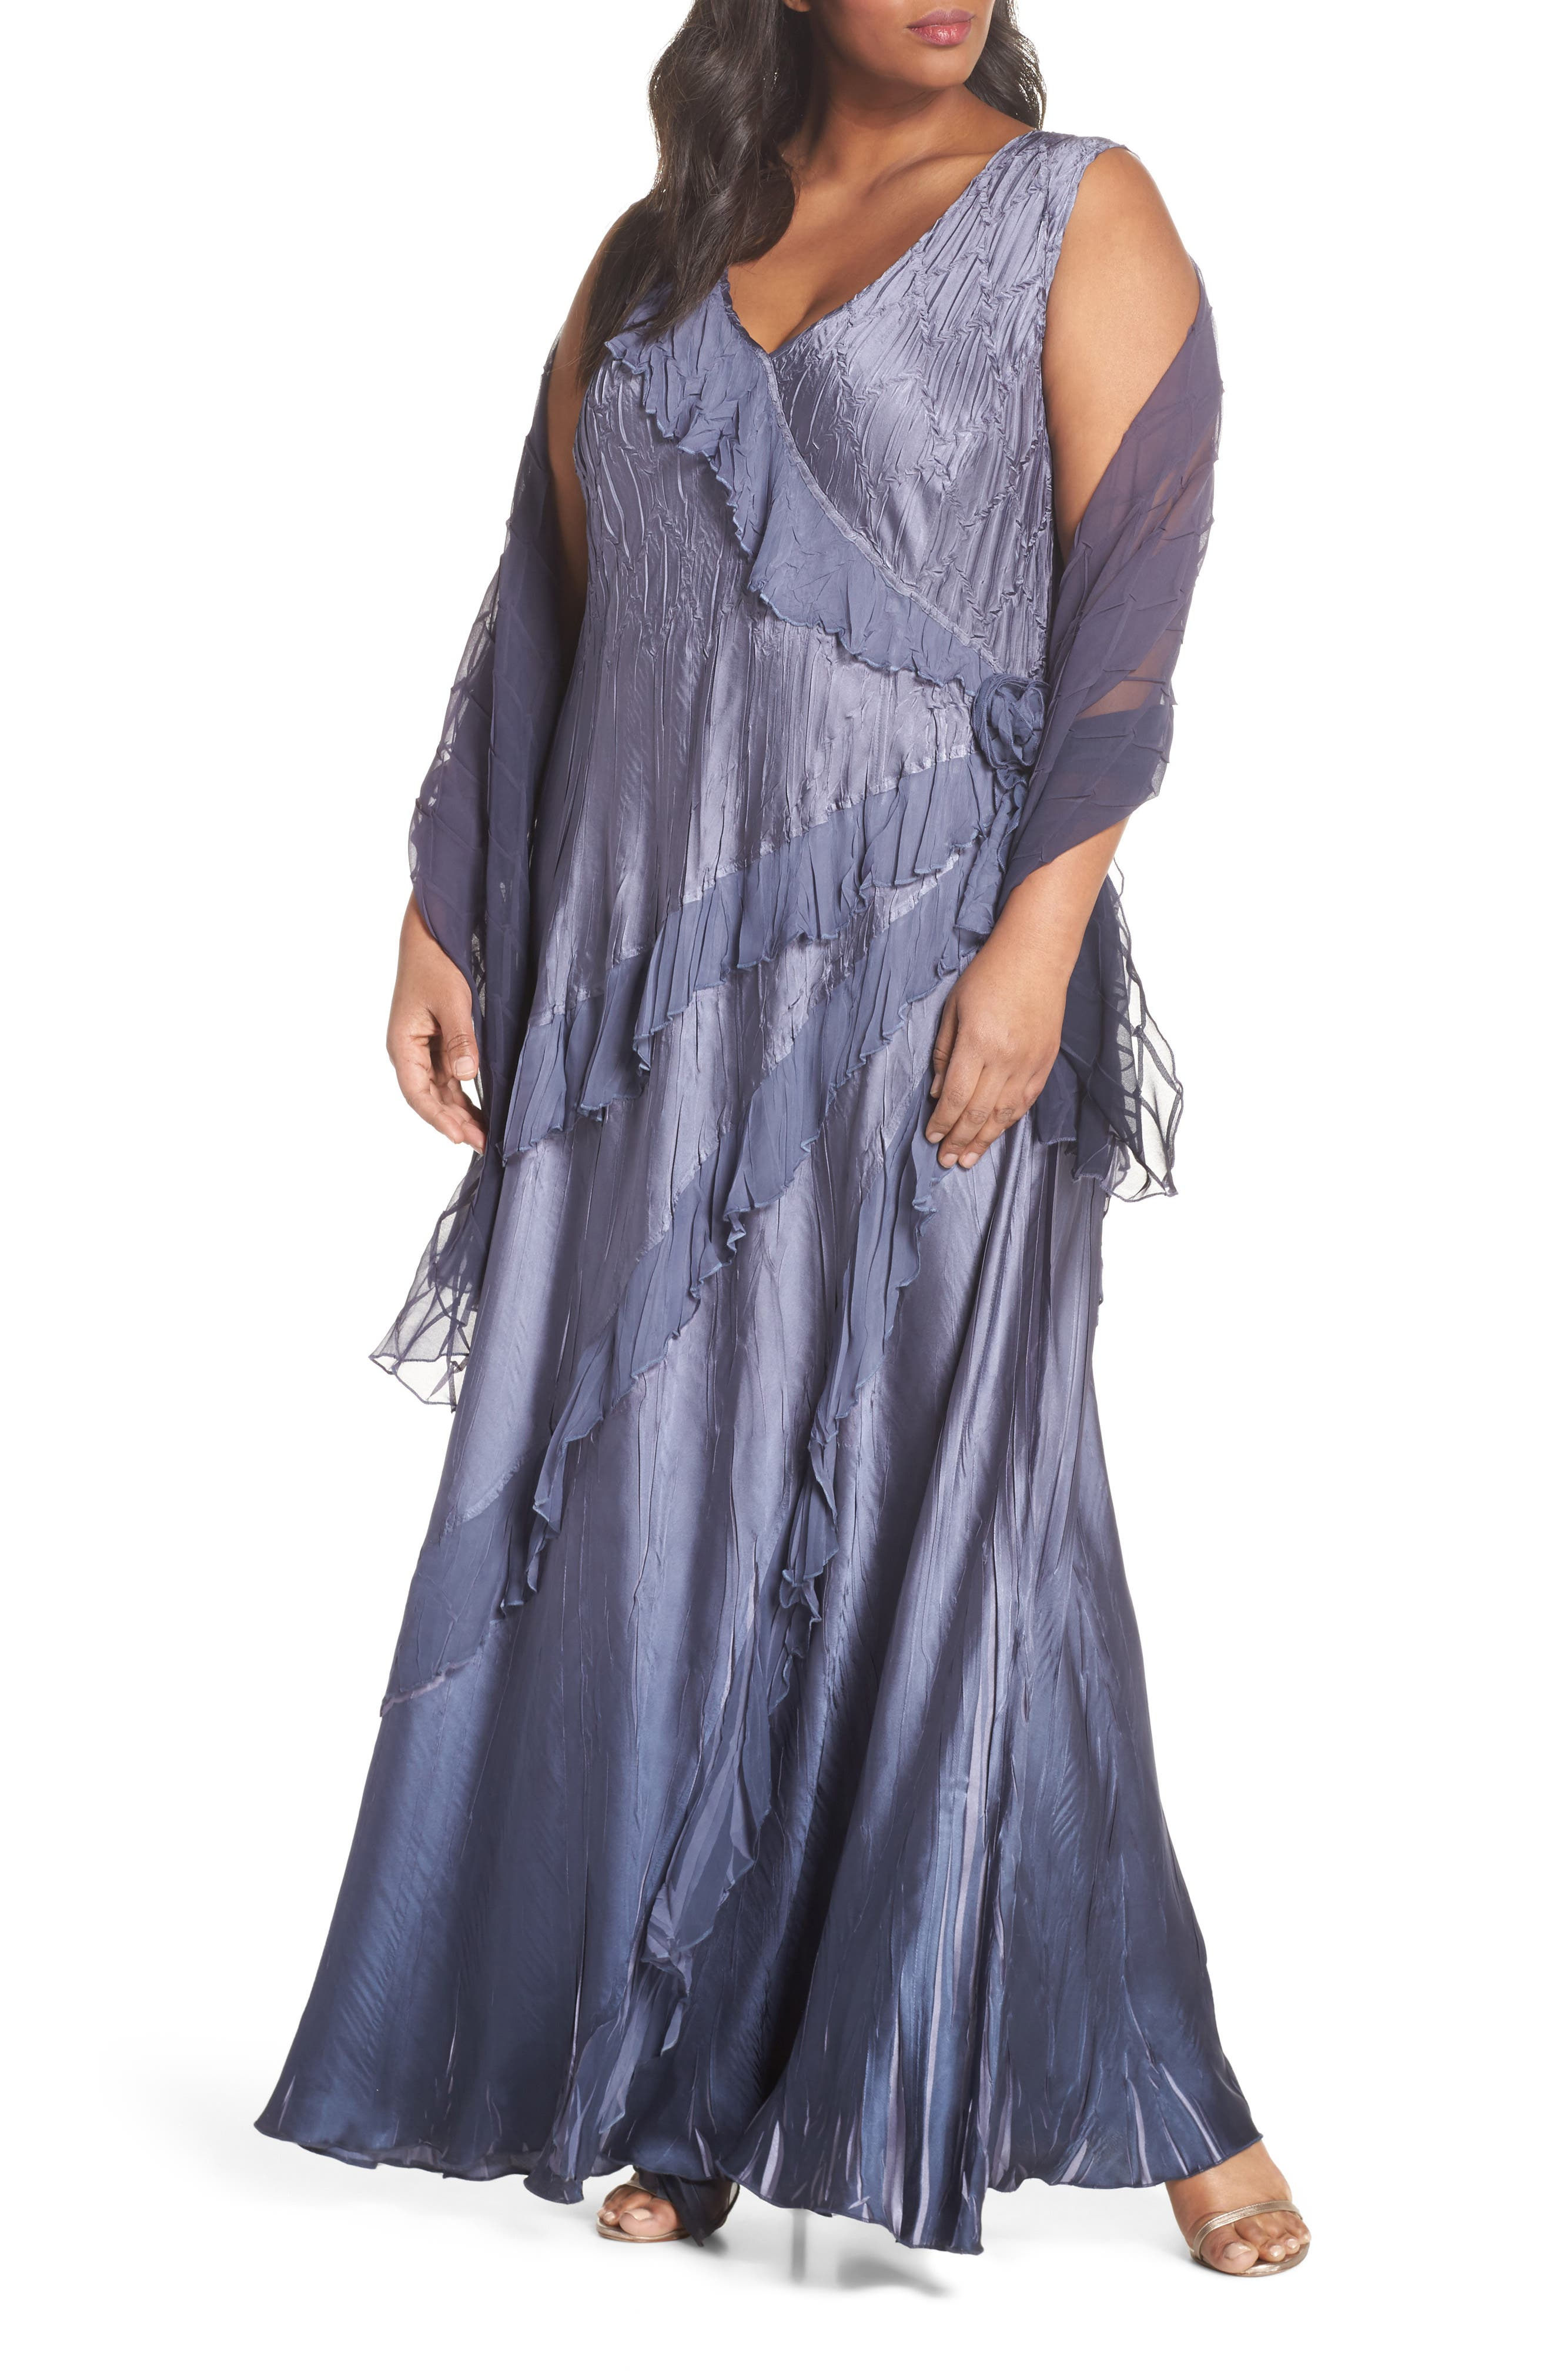 Ruffle Charmeuse Gown with Wrap,                             Main thumbnail 1, color,                             Purple Sage Night Ombre